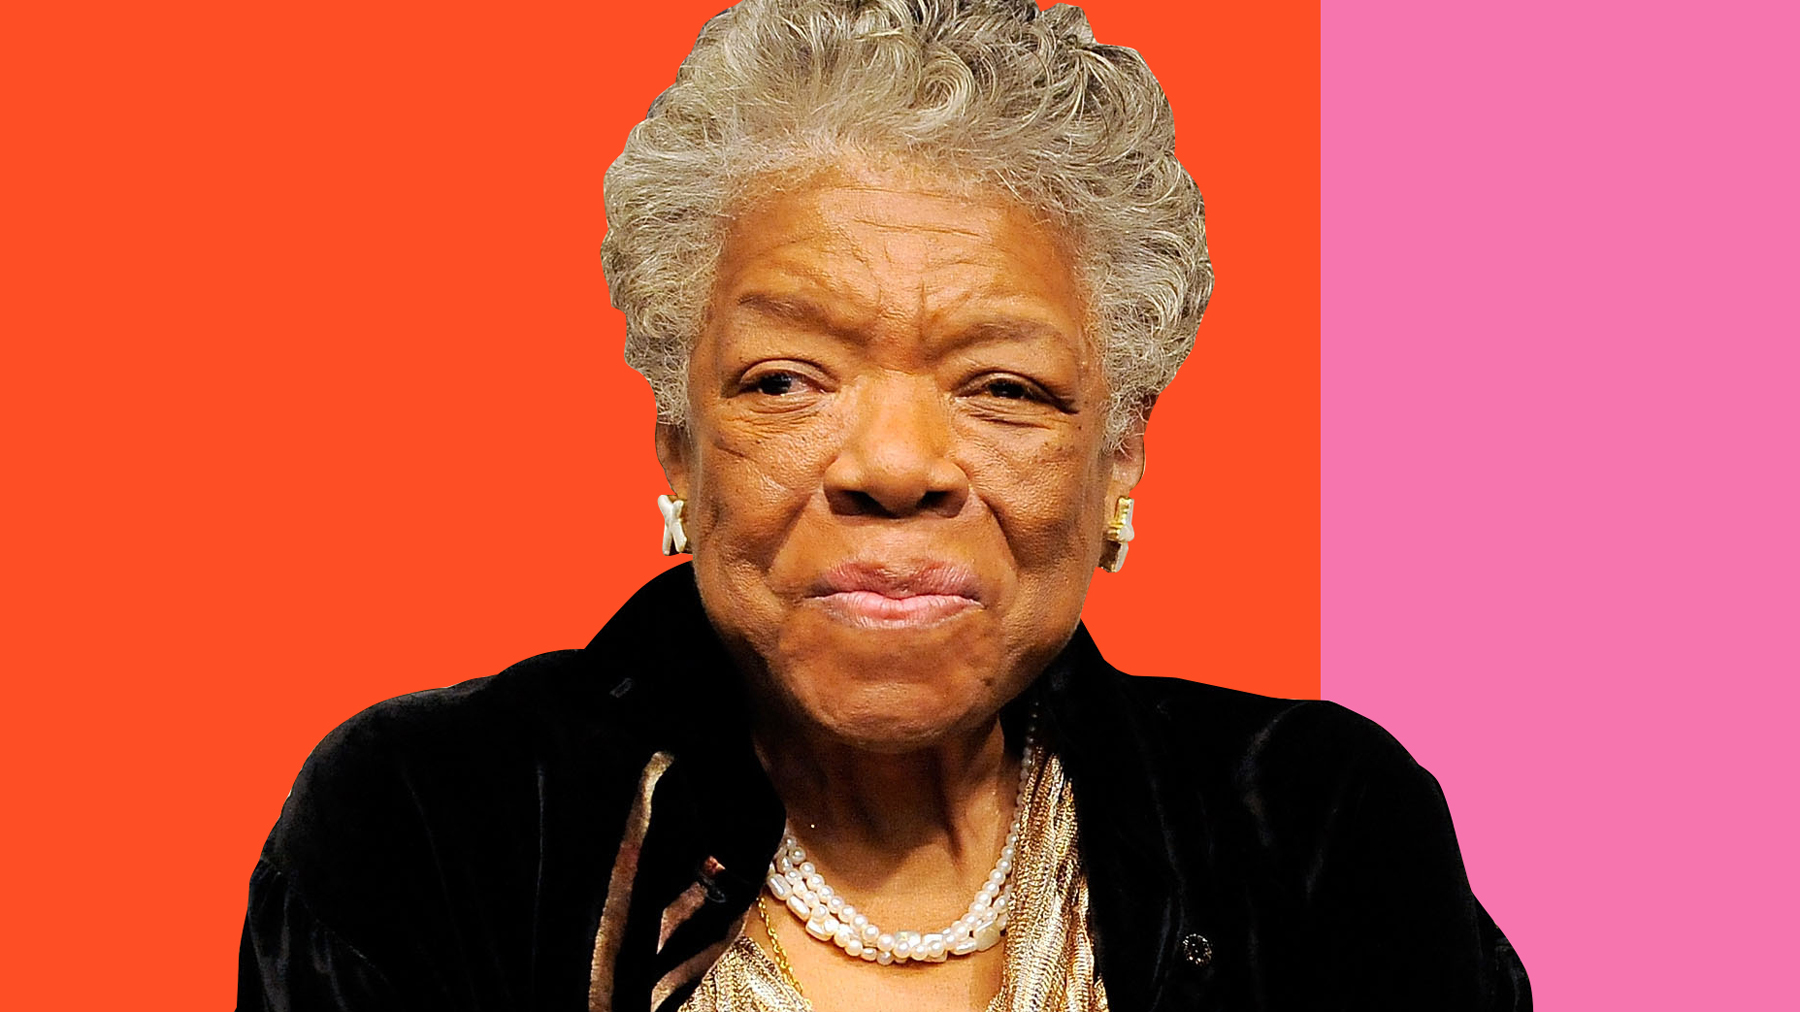 International Women's Day quotes, captions, wishes, sayings, and texts - Maya Angelou